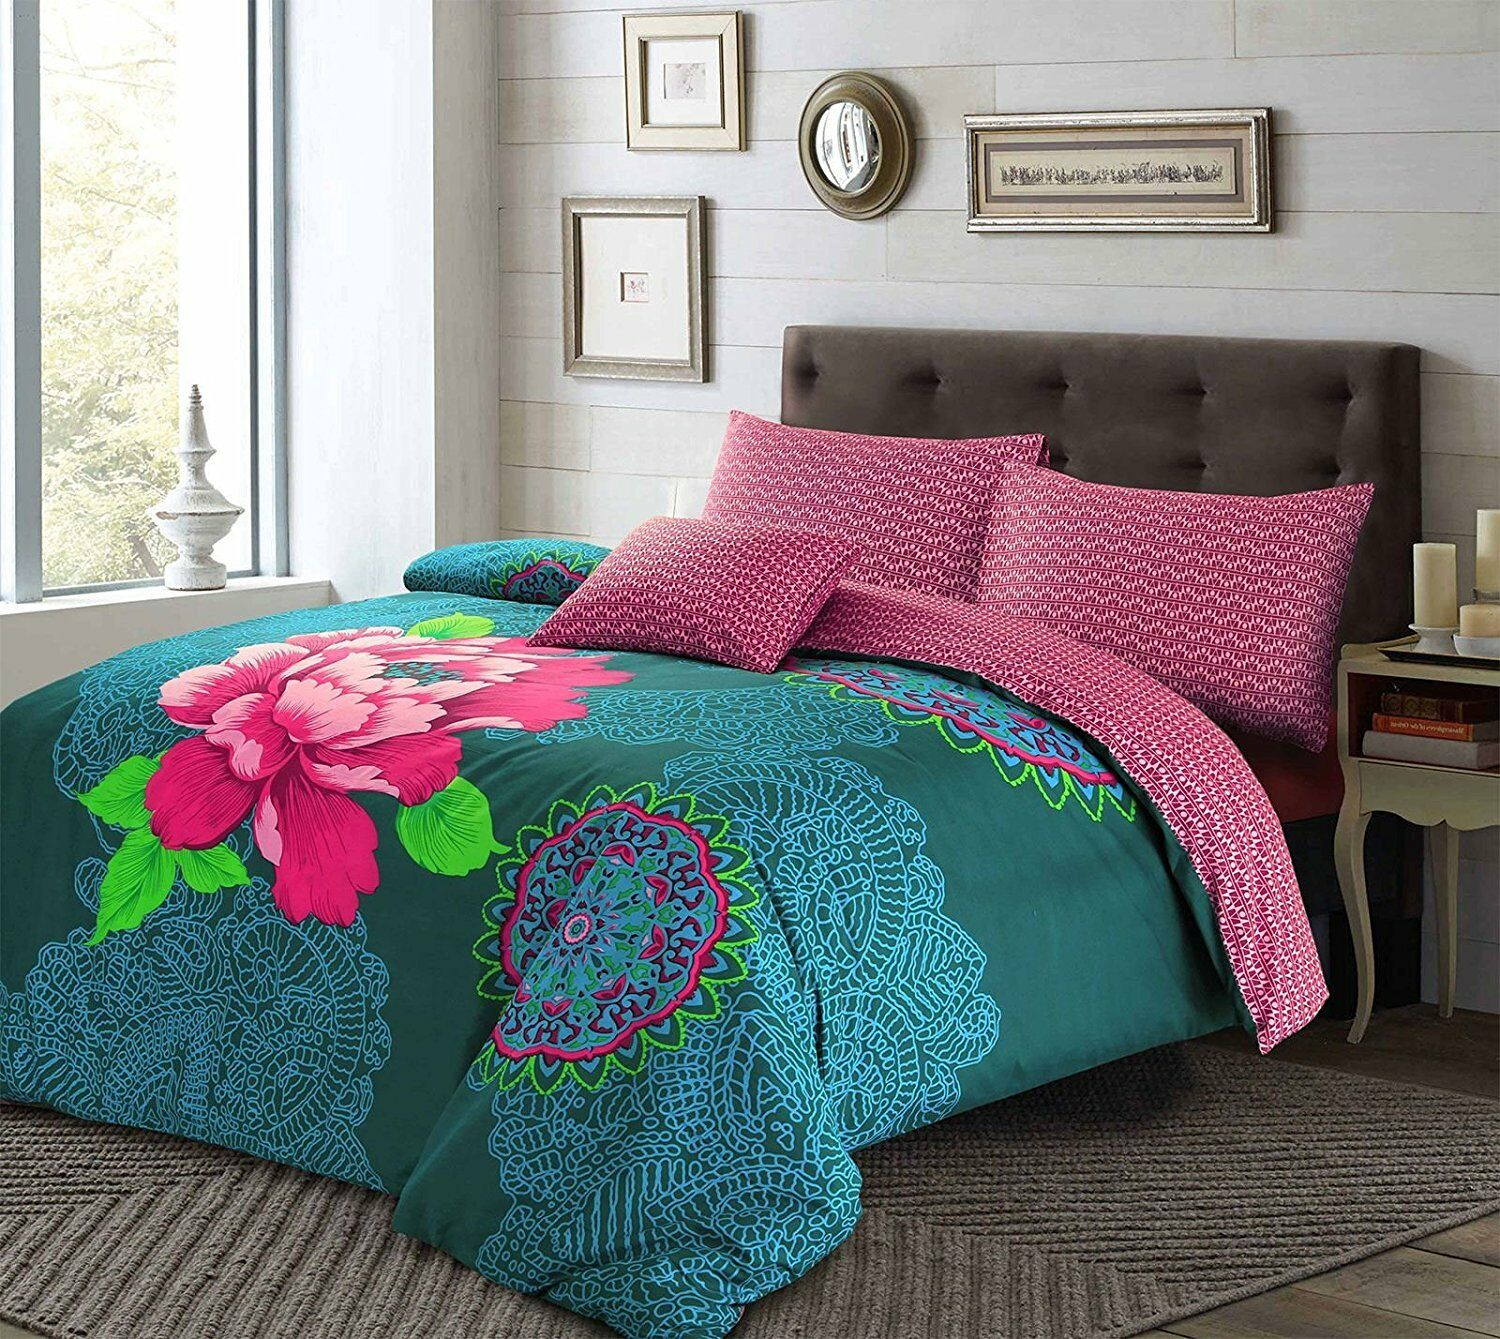 Bohemian Floral Janice Duvet Quilt Cover Bedding Set & Pillowcases King Size Bed